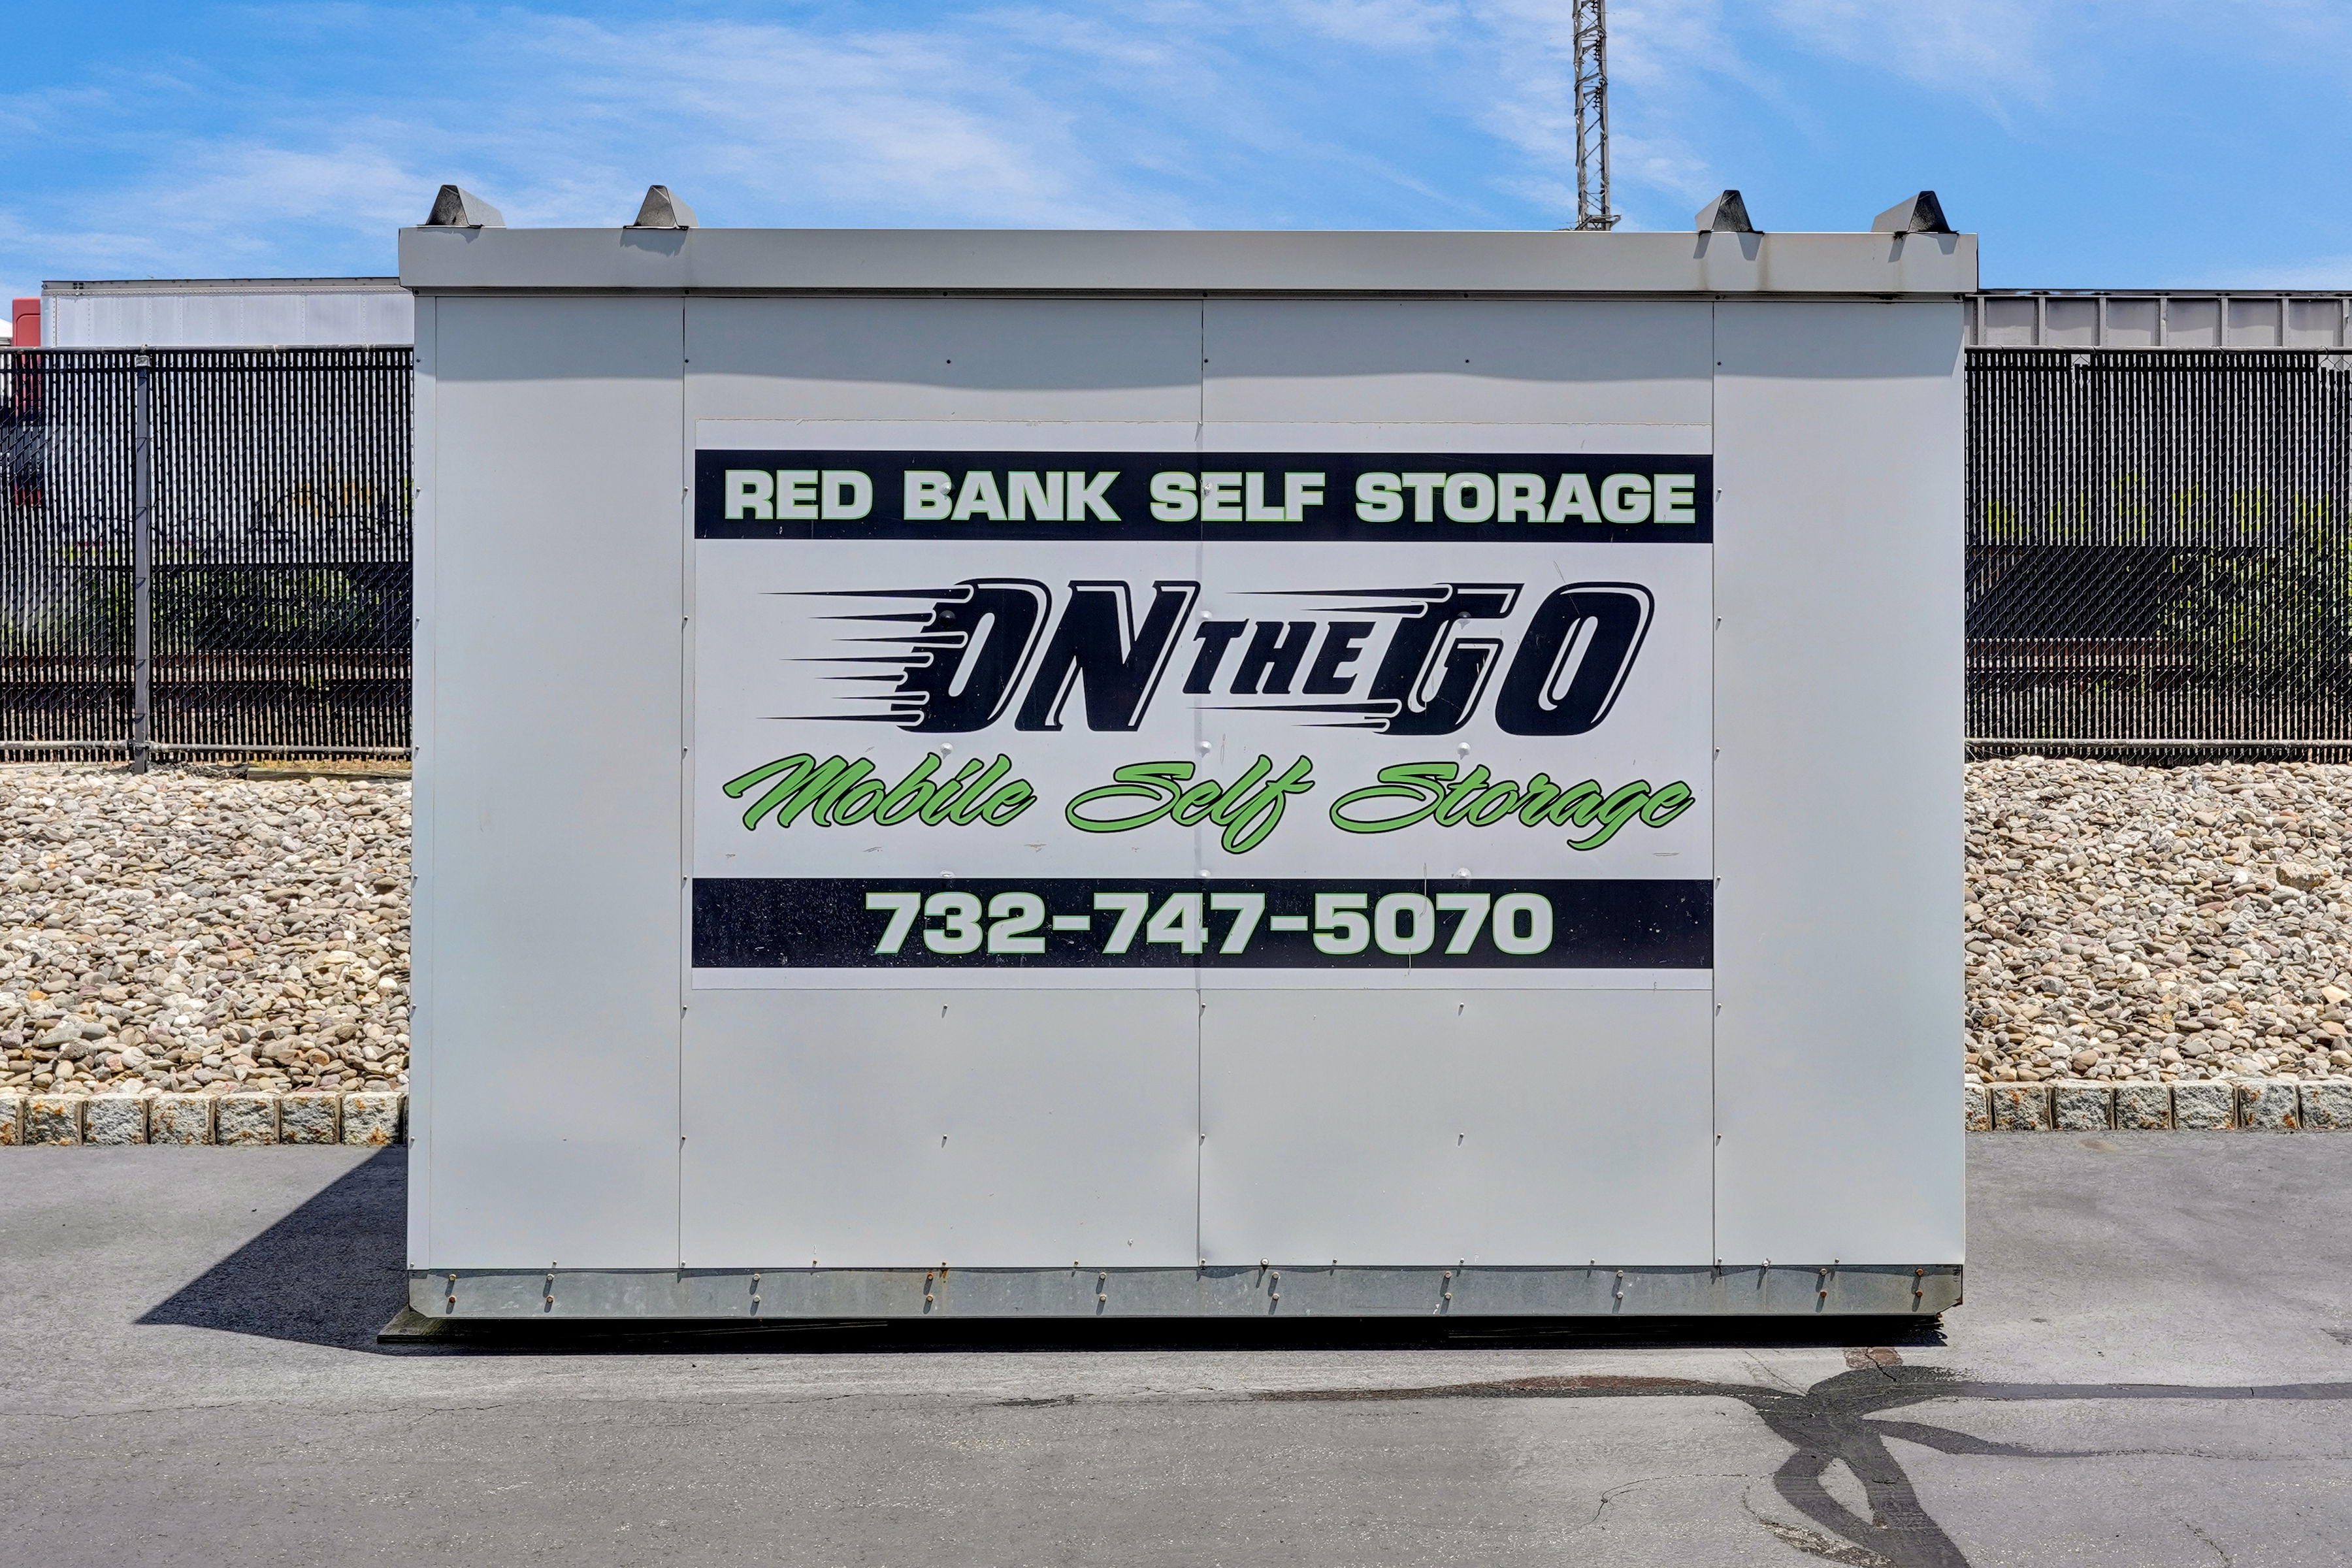 mobile self storage red bank NJ